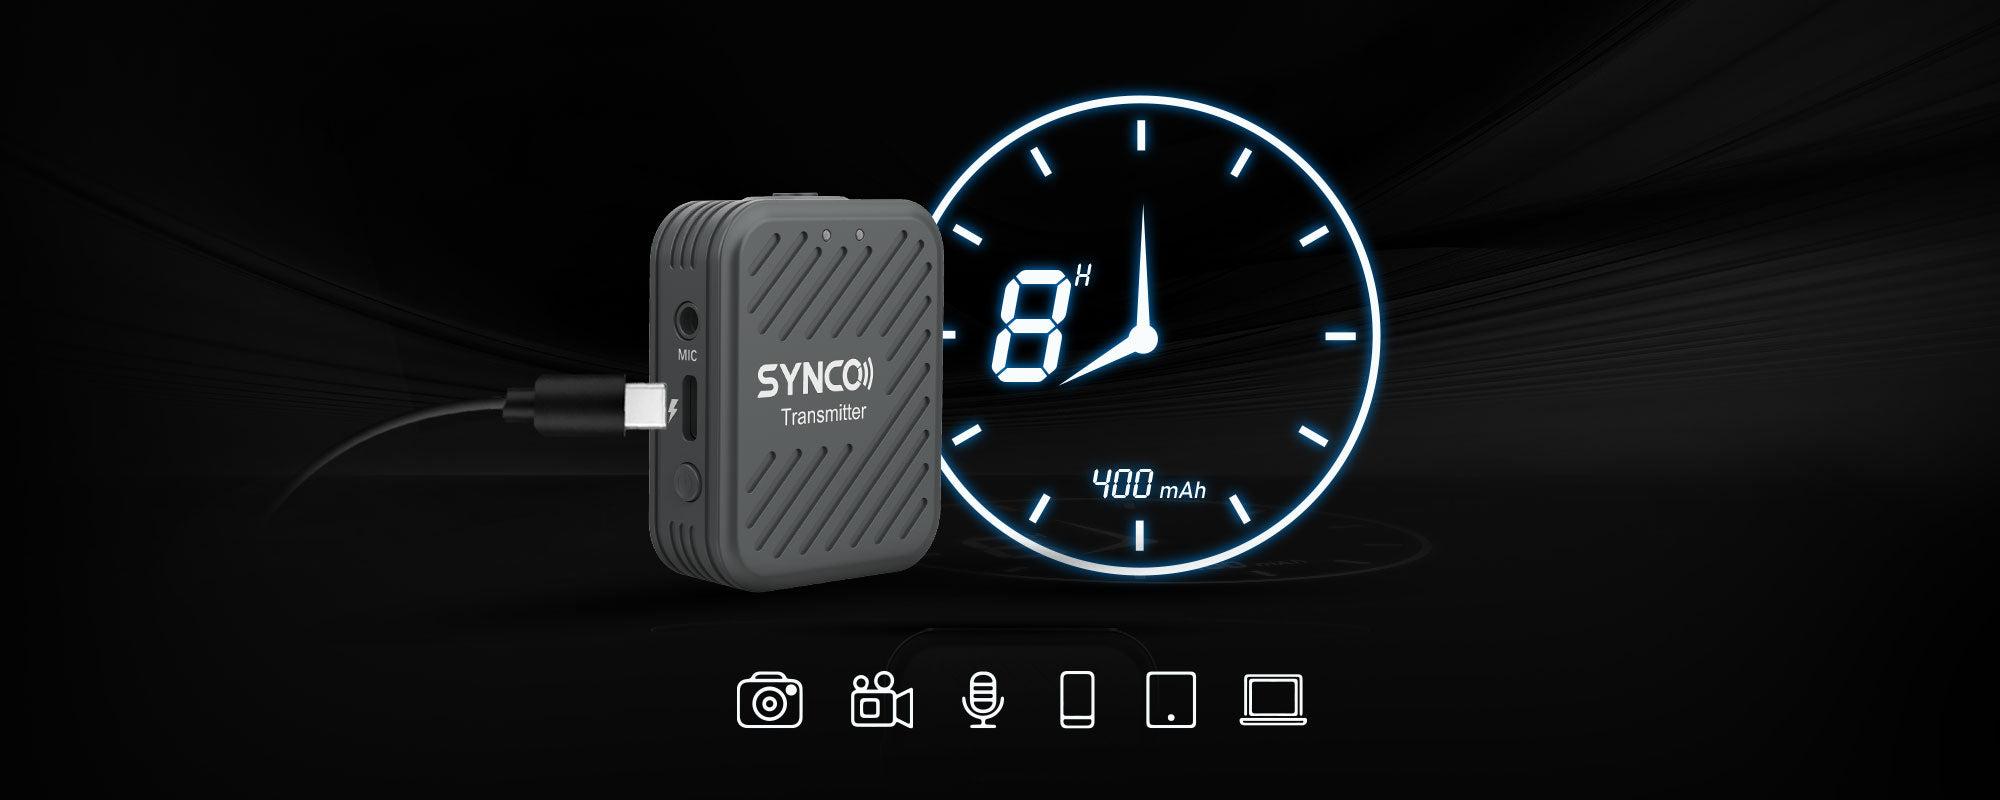 SYNCO G1(A2) Big Uses in Tiny Construction